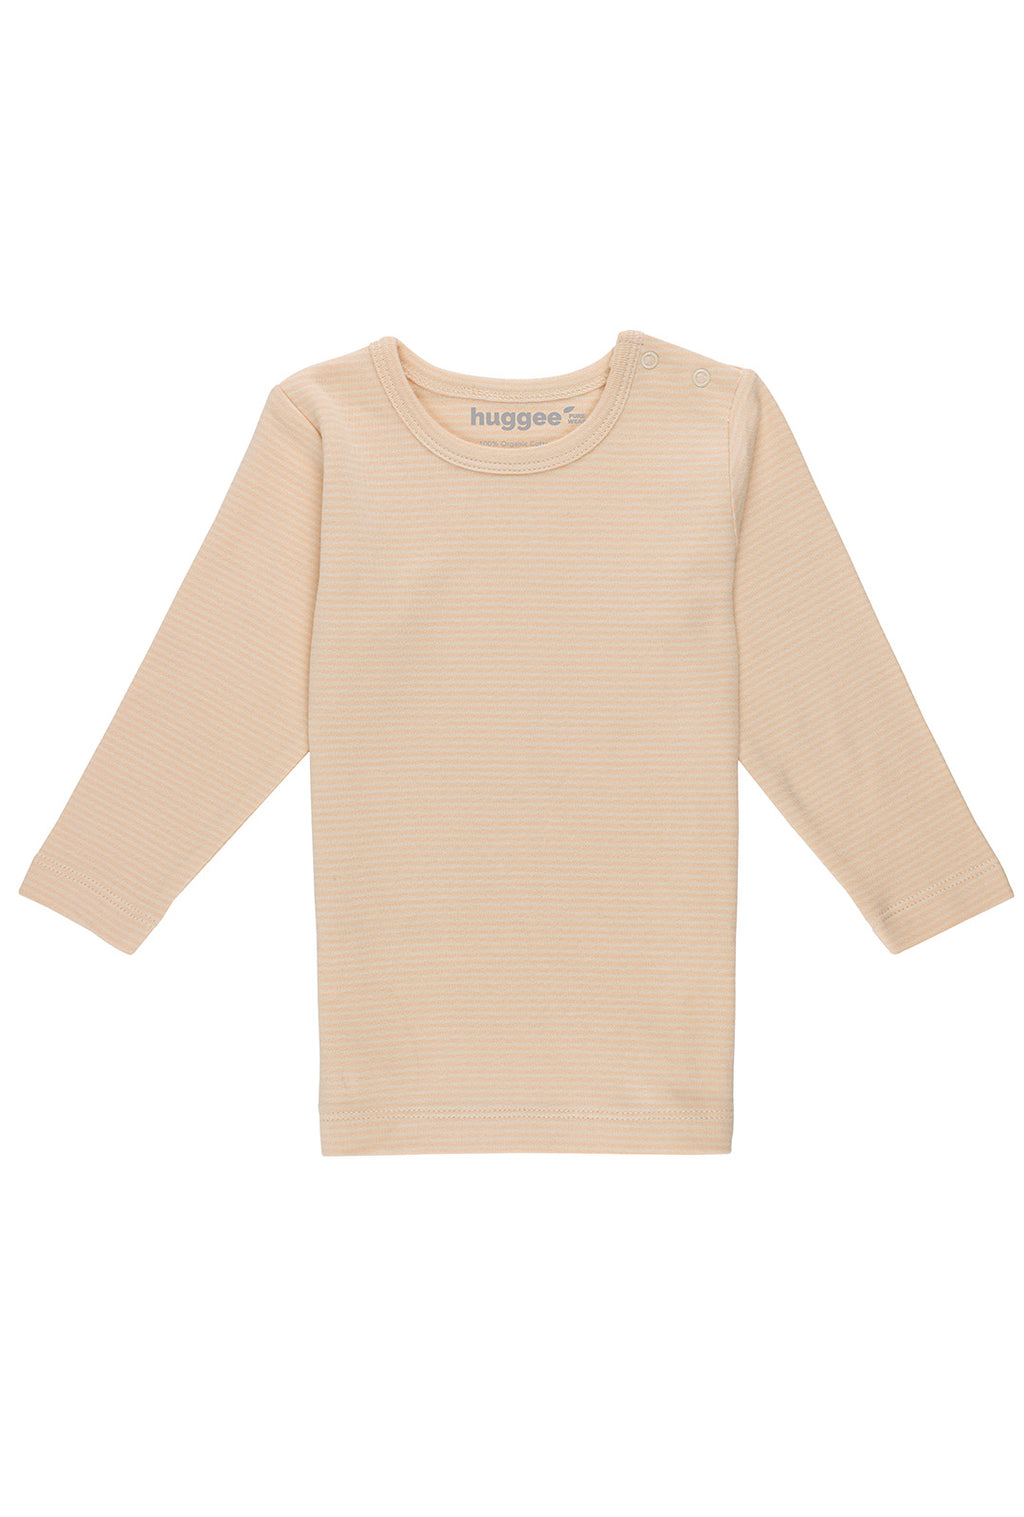 Stripes Natural and Nude Long Sleeve T-Shirt